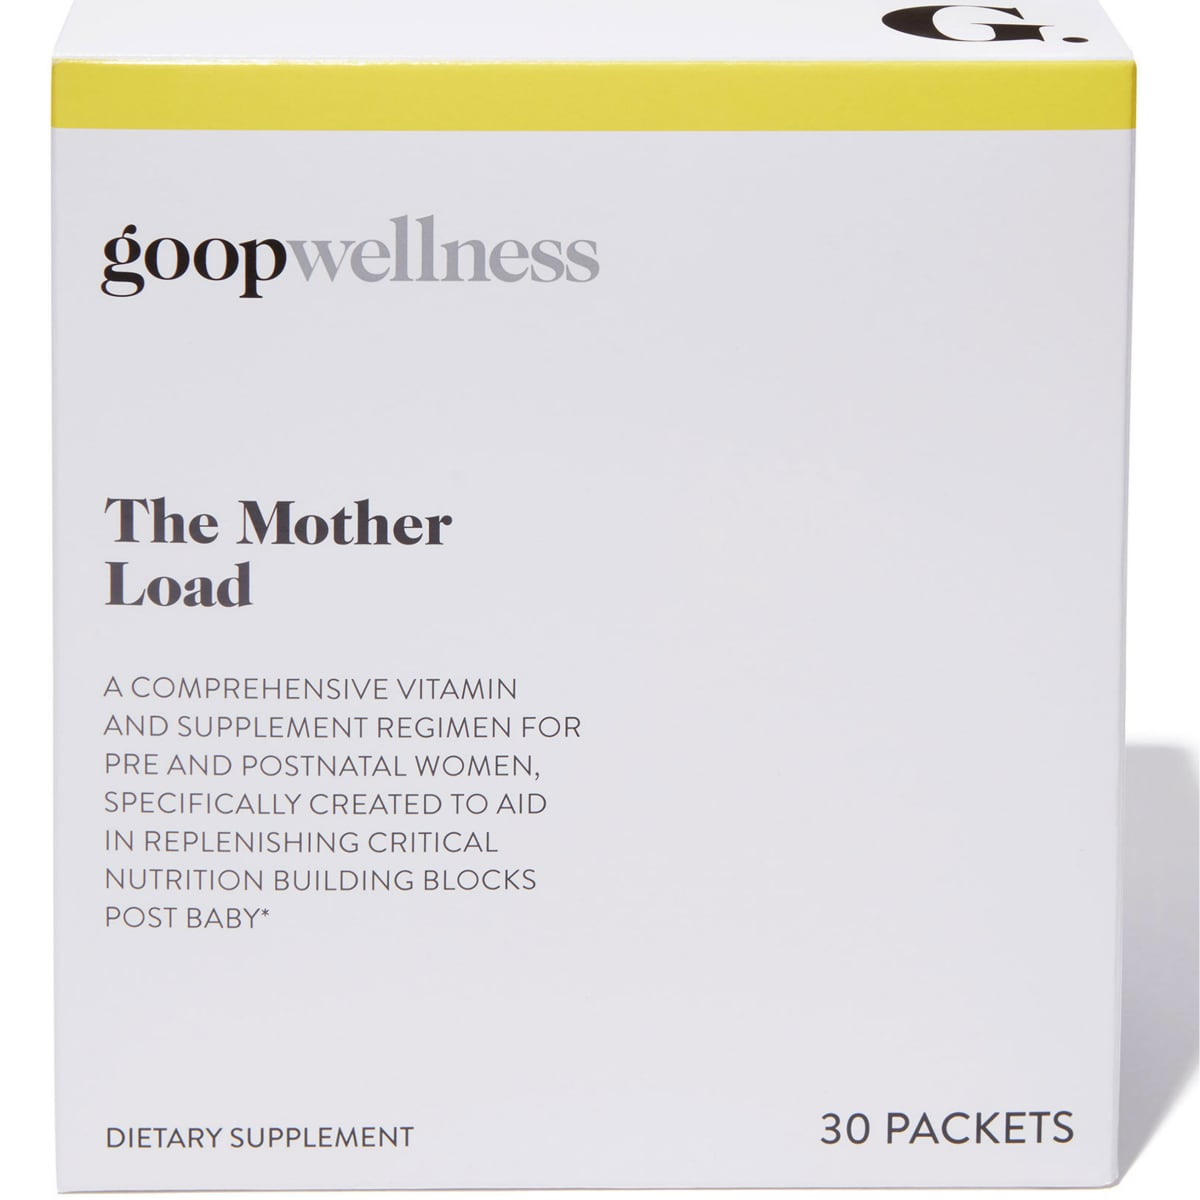 Goop beauty product